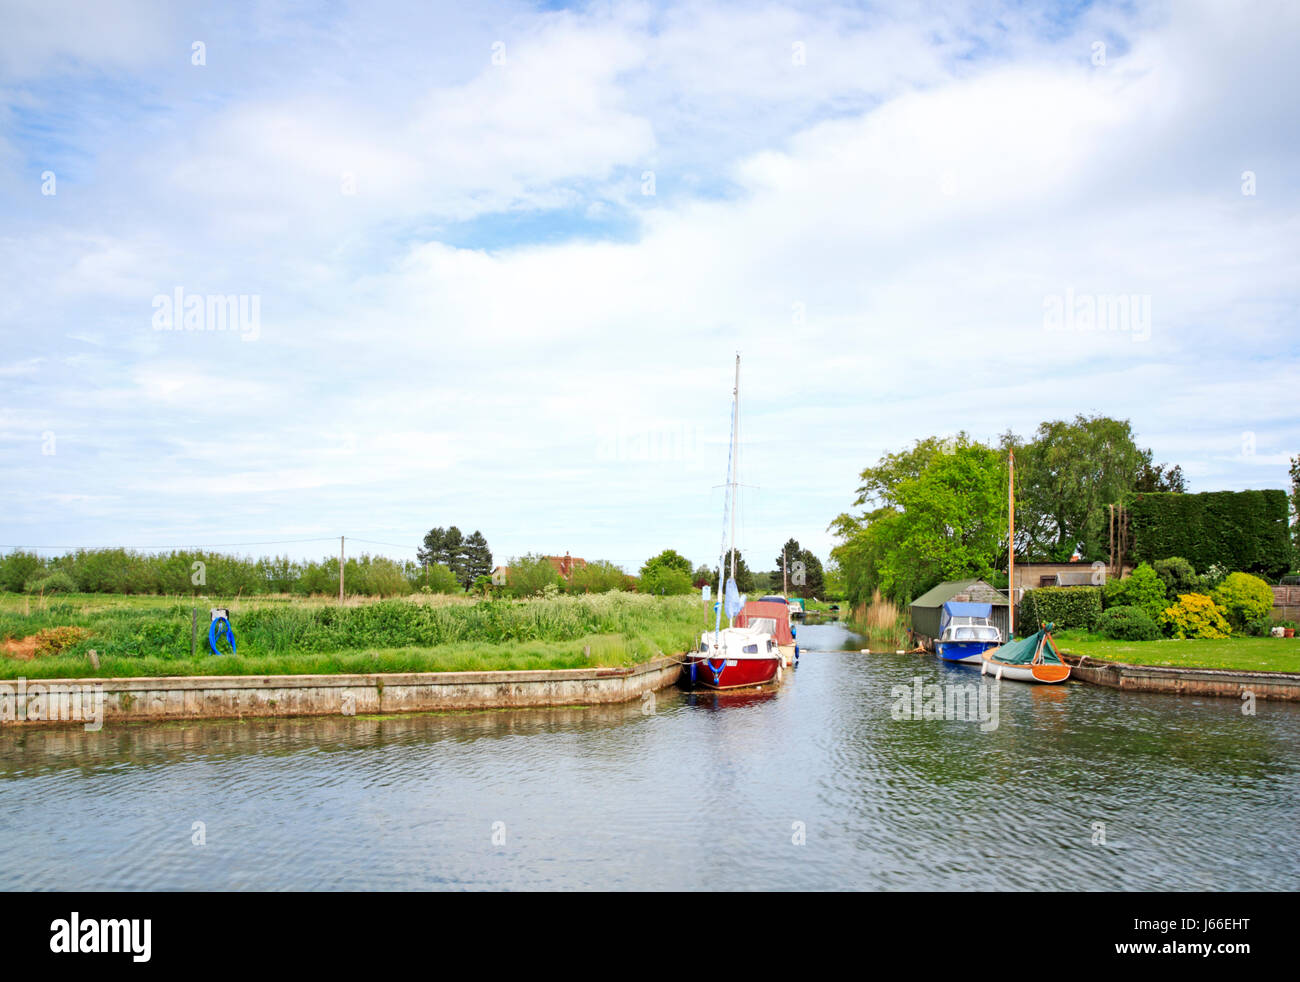 A view of West Somerton Staithe on the Norfolk Broads at West Somerton, Norfolk, England, United Kingdom. - Stock Image